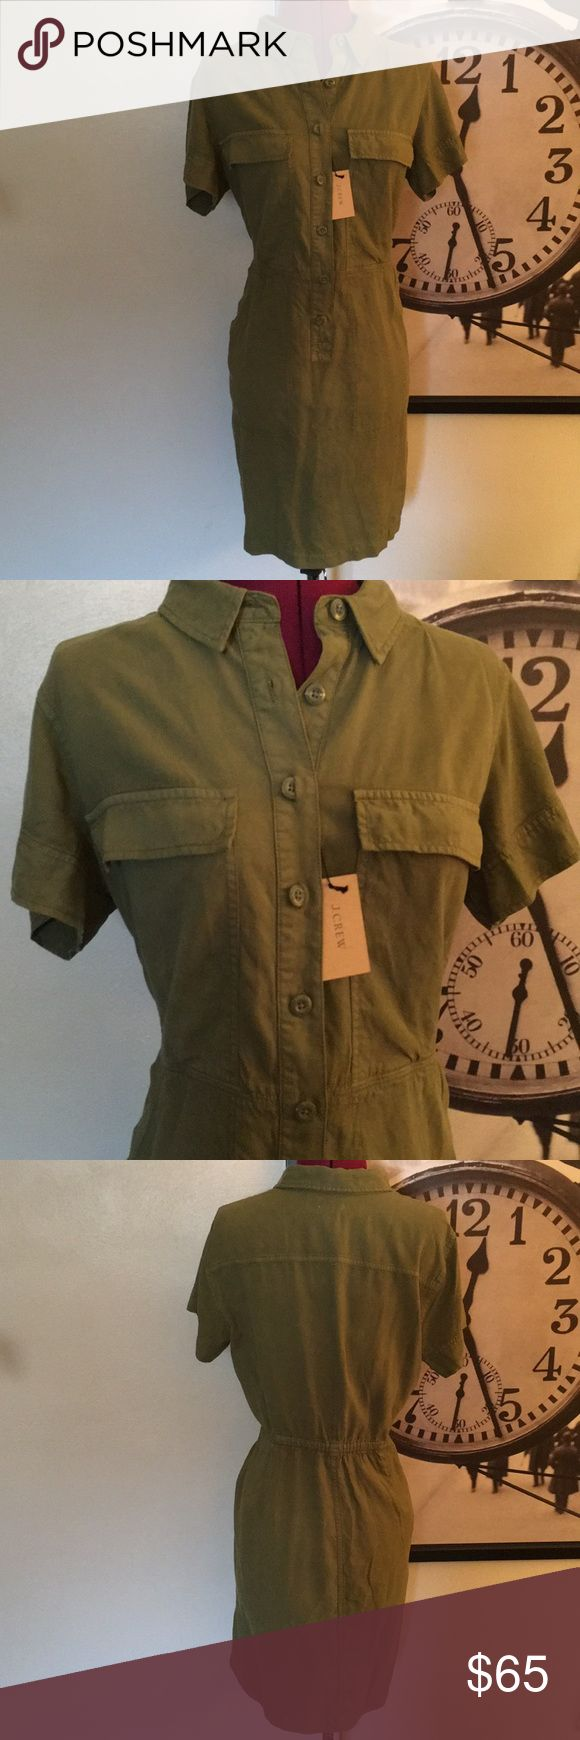 J. Crew Olive Cargo Shirt Dress Olive Cargo Shirt Dress in a thick non stretch fabric. Gathered waist back, pockets. This dress is great for multiple seasons!  NWT and Buttons J. Crew Dresses Midi